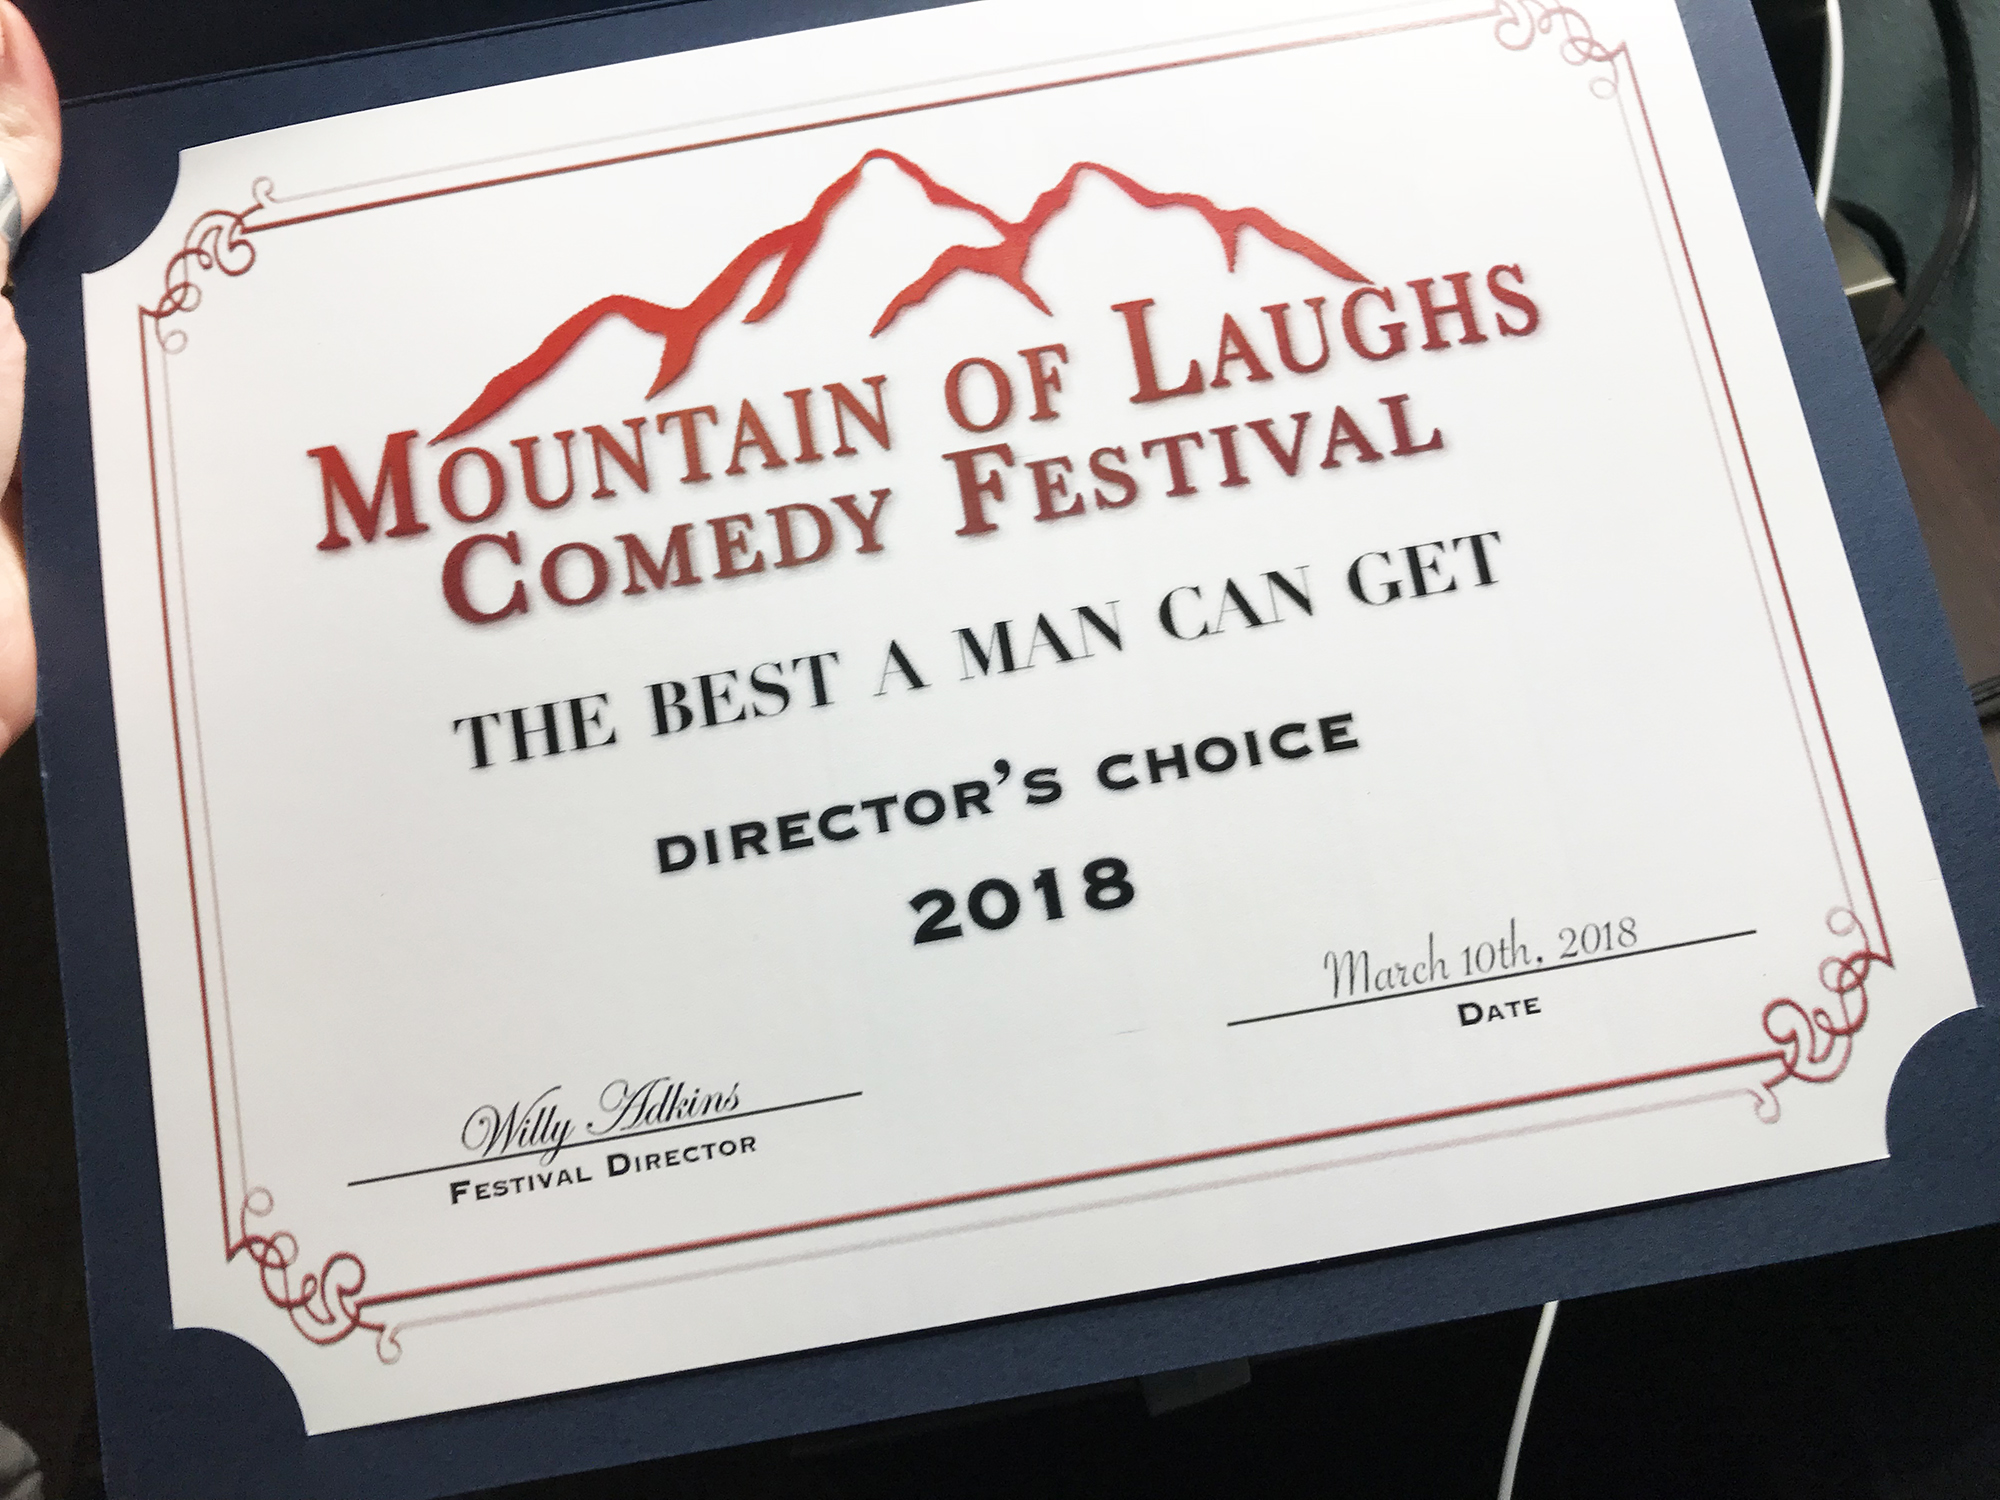 Geena Matuson (@geenamatuson) presented with Director's Choice Award at Breaking Fate Entertainment's Mountain of Laughs Comedy Film Festival in Gatlinburg, TN, 2018. See more @ https://thegirlmirage.com.